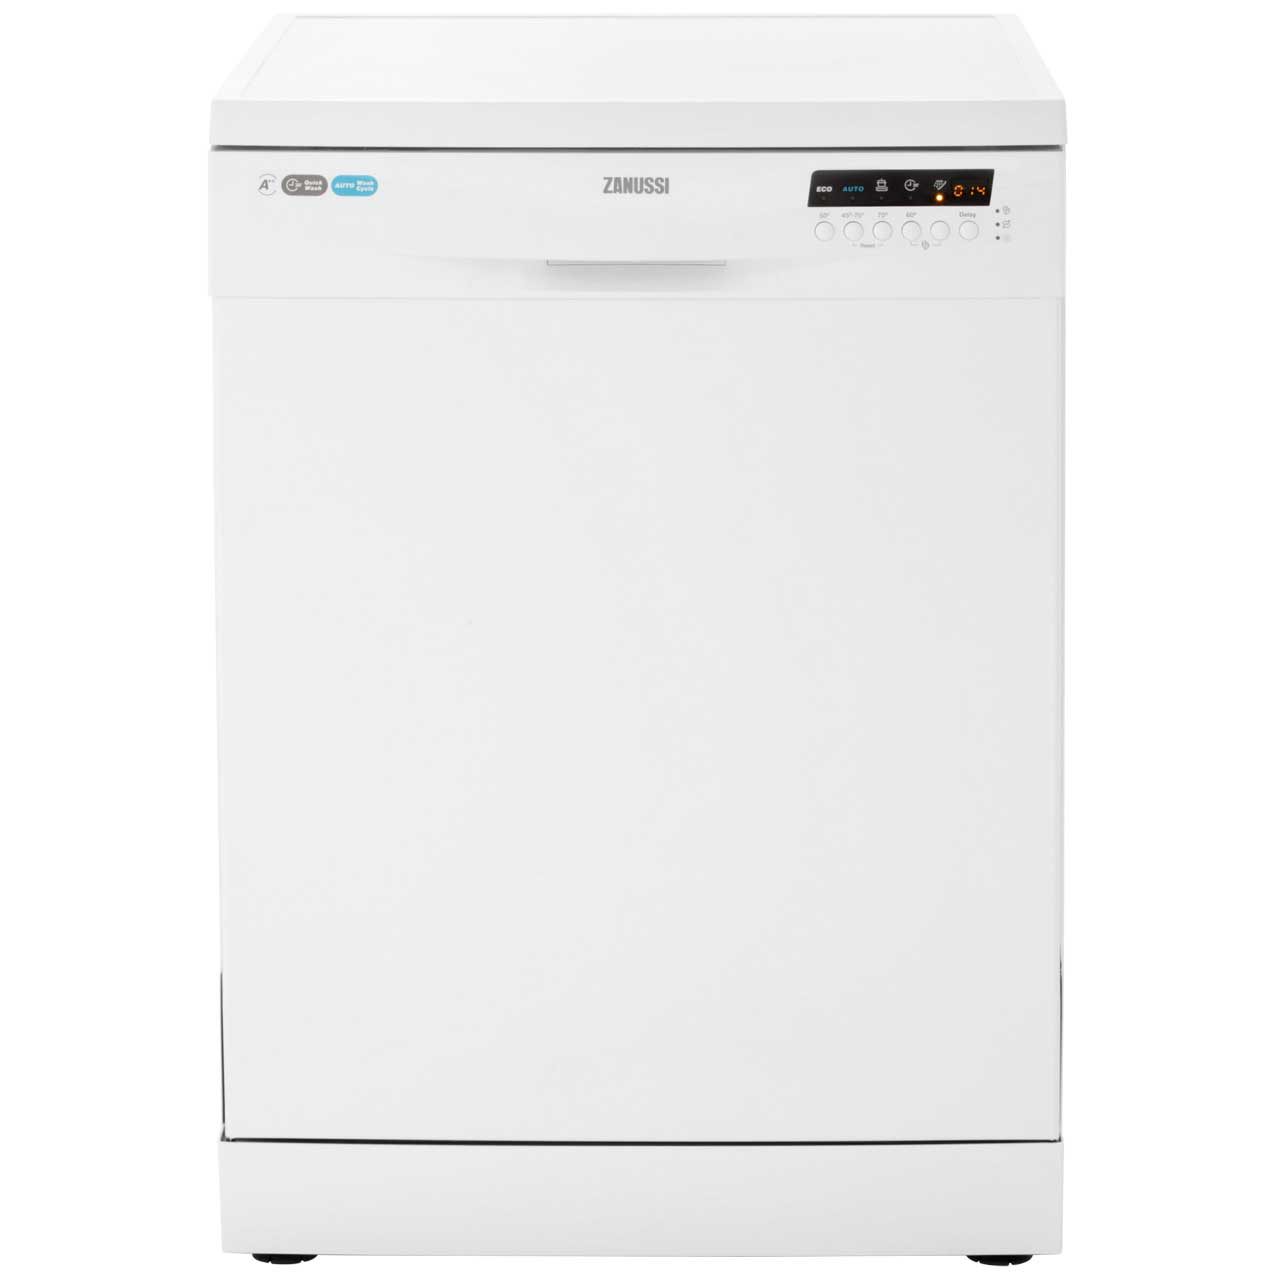 Zanussi ZDF26011WA Free Standing Dishwasher in White